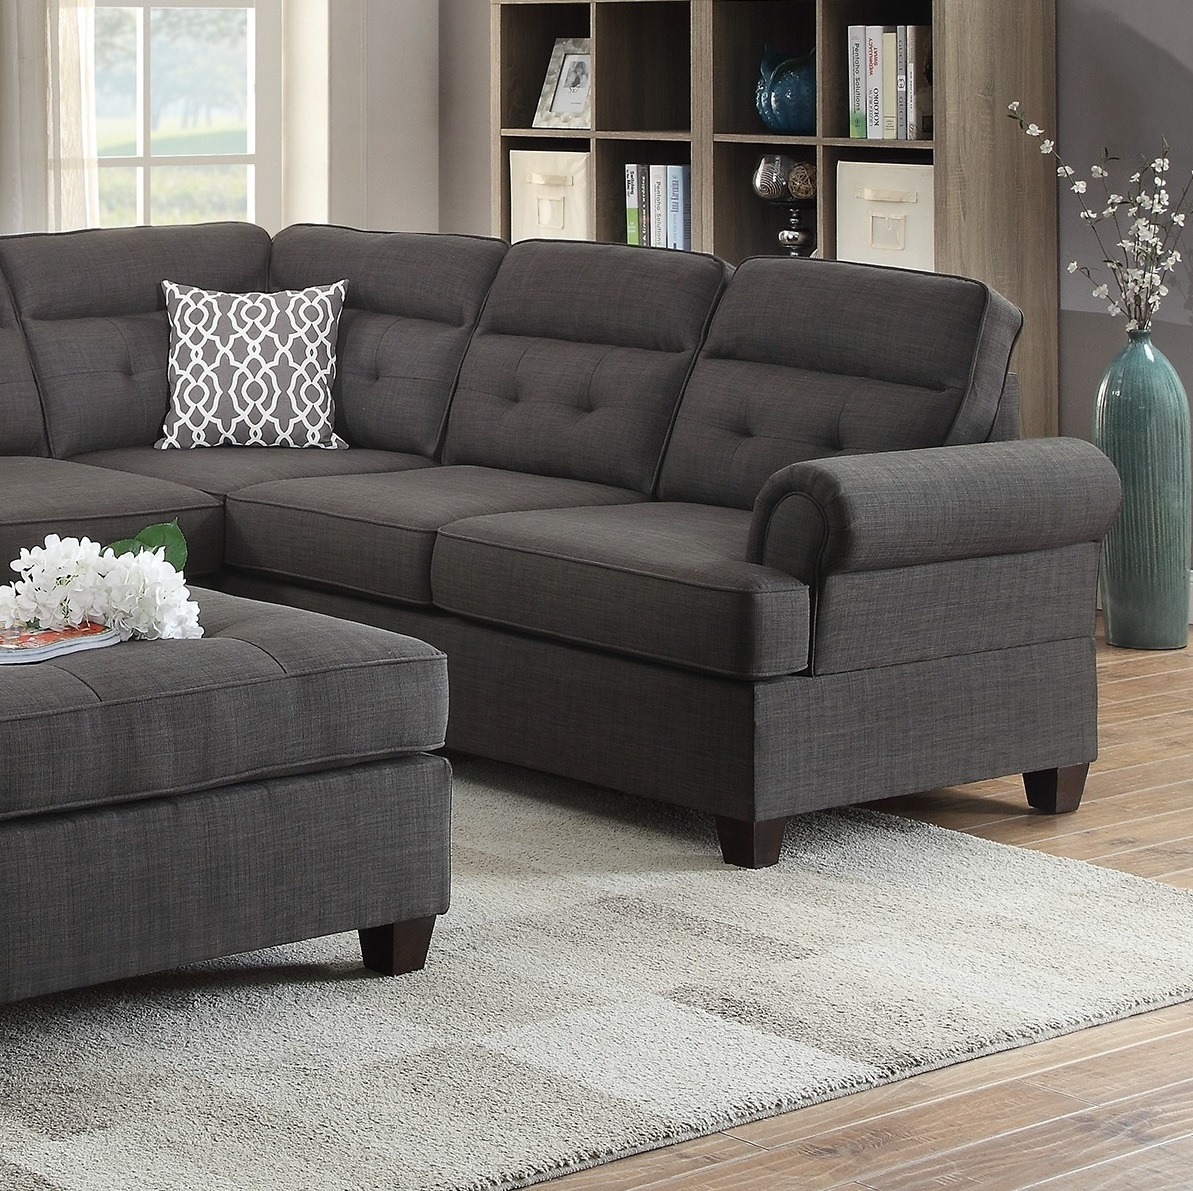 Sectional Black Fabric Sofa Loveseat Wedge Hot Sectionals